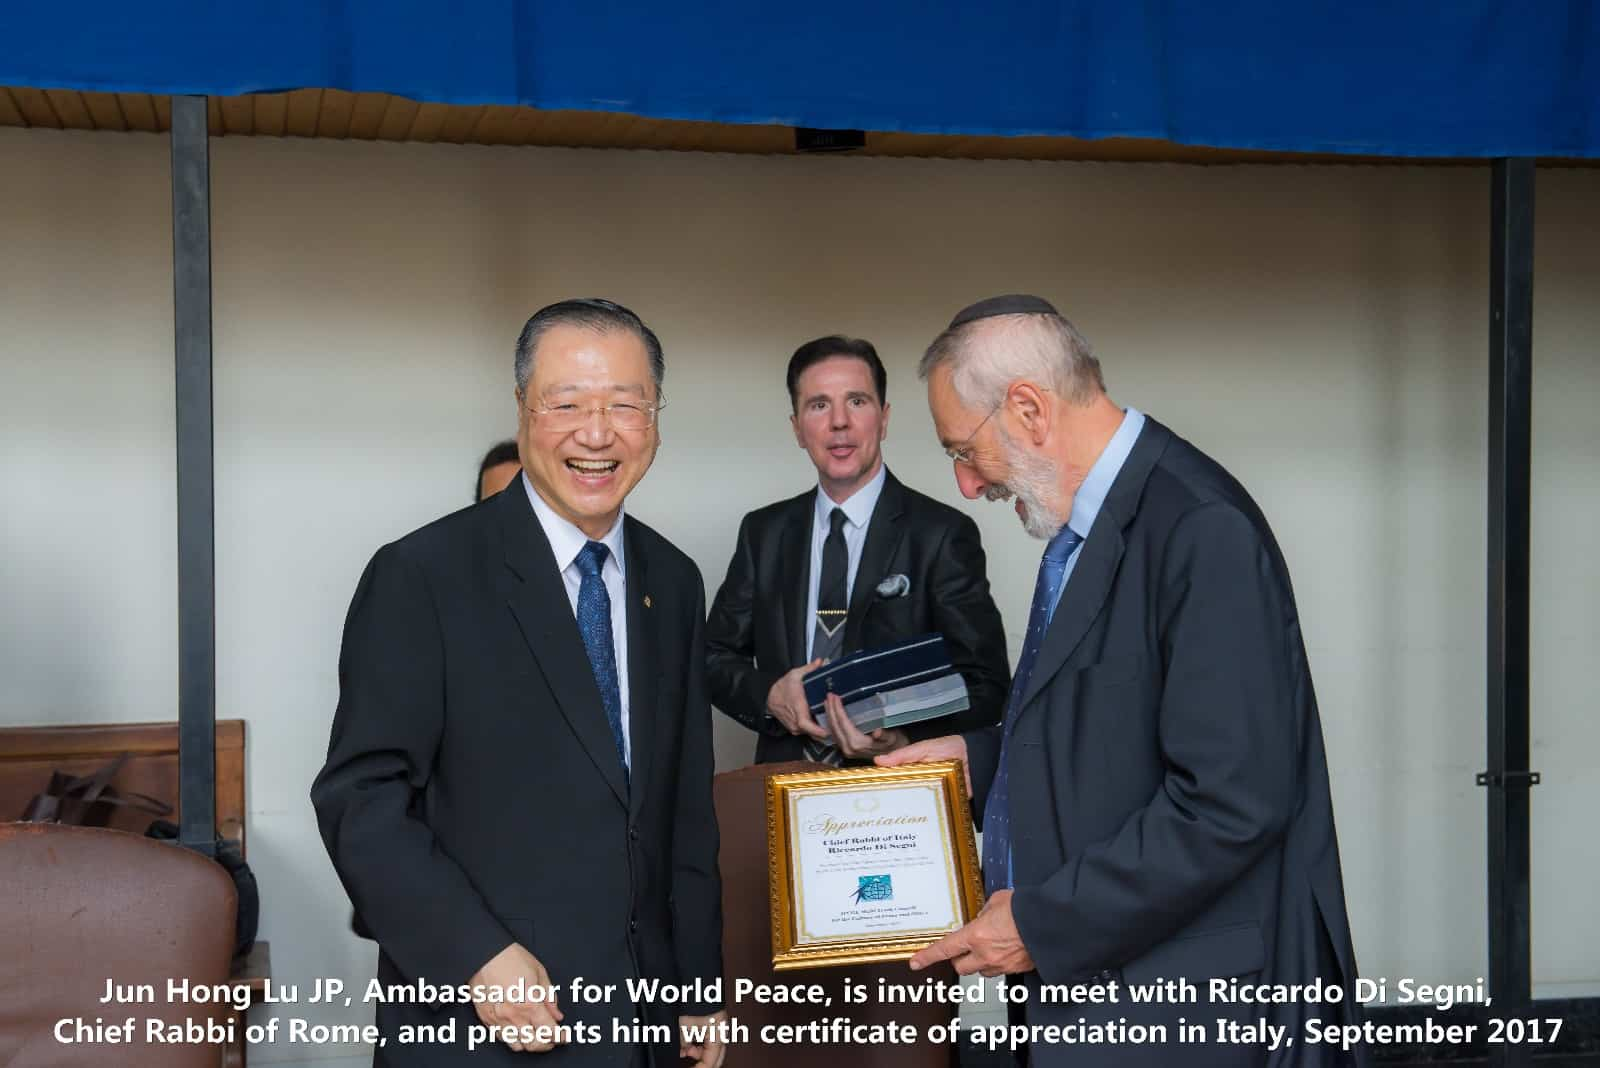 Master Jun Hong Lu meets with Ricardo Di Segni, Chief Rabbi of Rome, and presents him with certificates of appreciation in Italy, September 2017